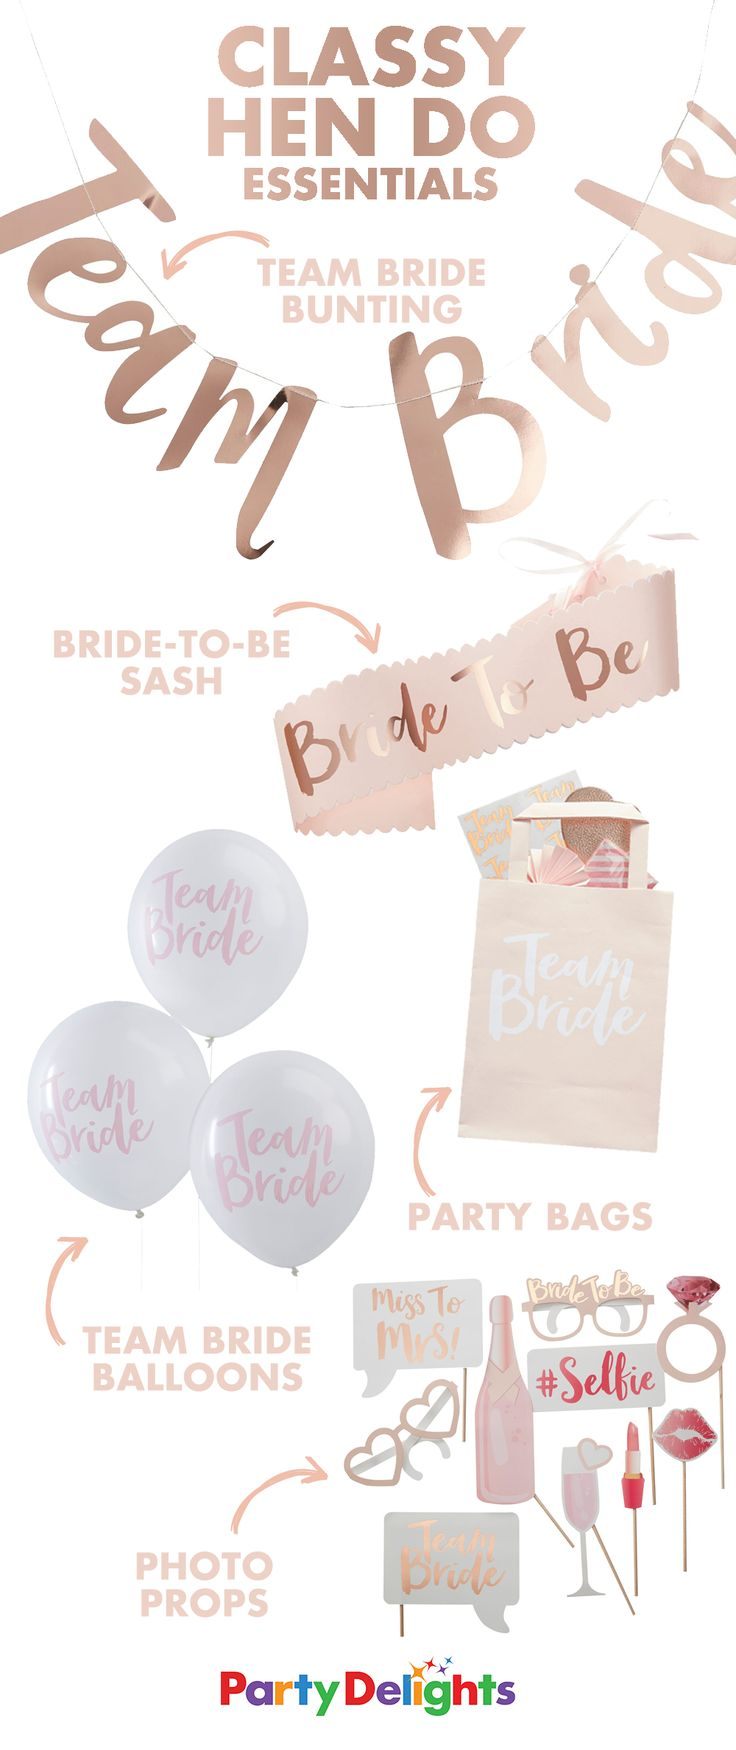 Celebrate the bride-to-be's last night of freedom with these hen party essentials! Browse our Team Bride party supplies at partydelights.co.uk.